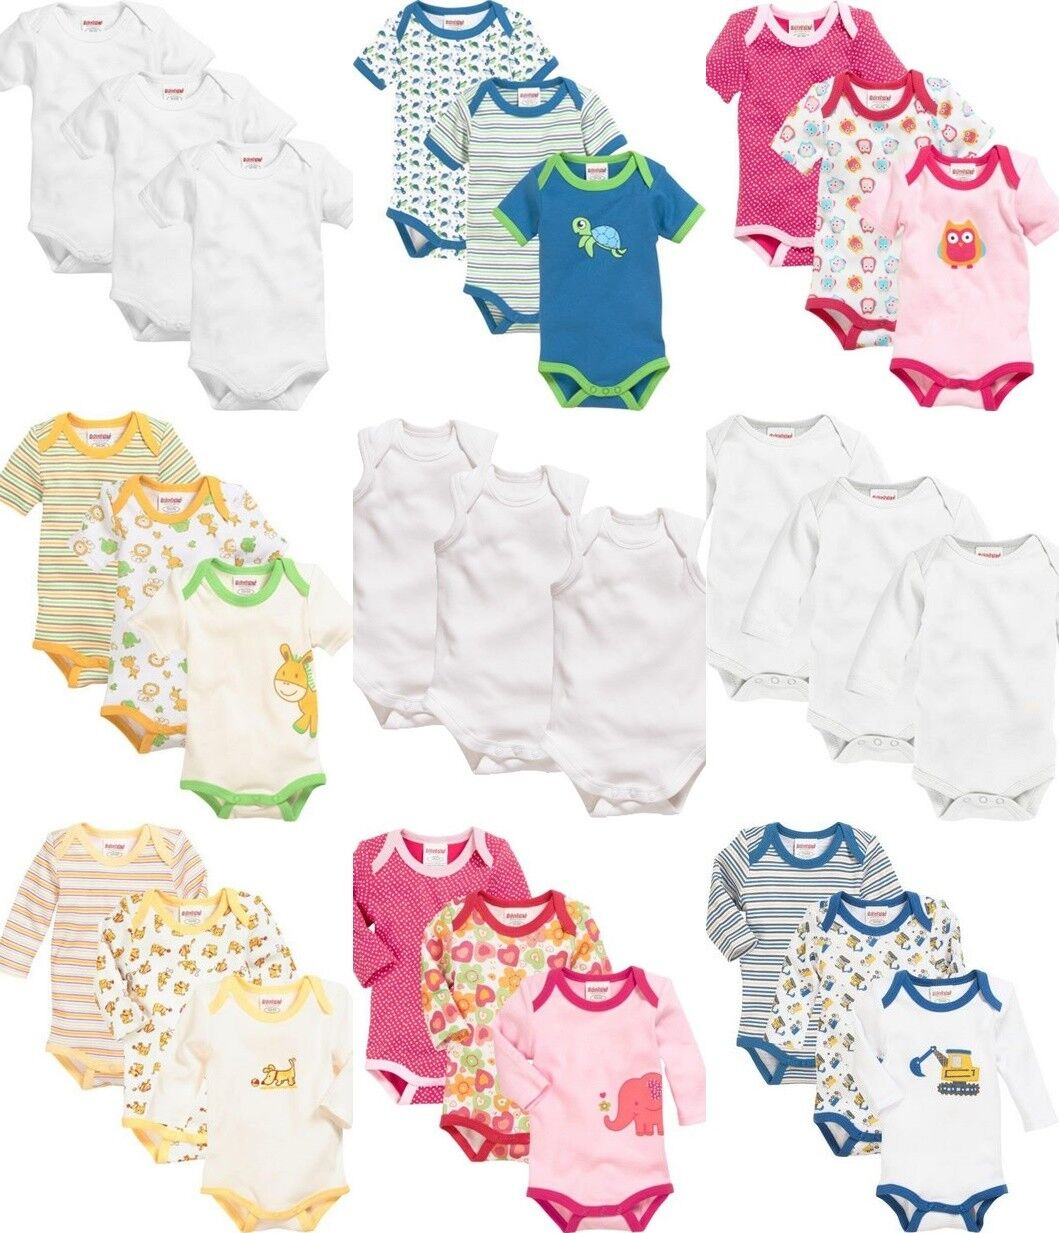 Body Shorts Set Baby Set 50 56 62 68 74 80 86 92 98 Sommer Pumpshorts Polobody